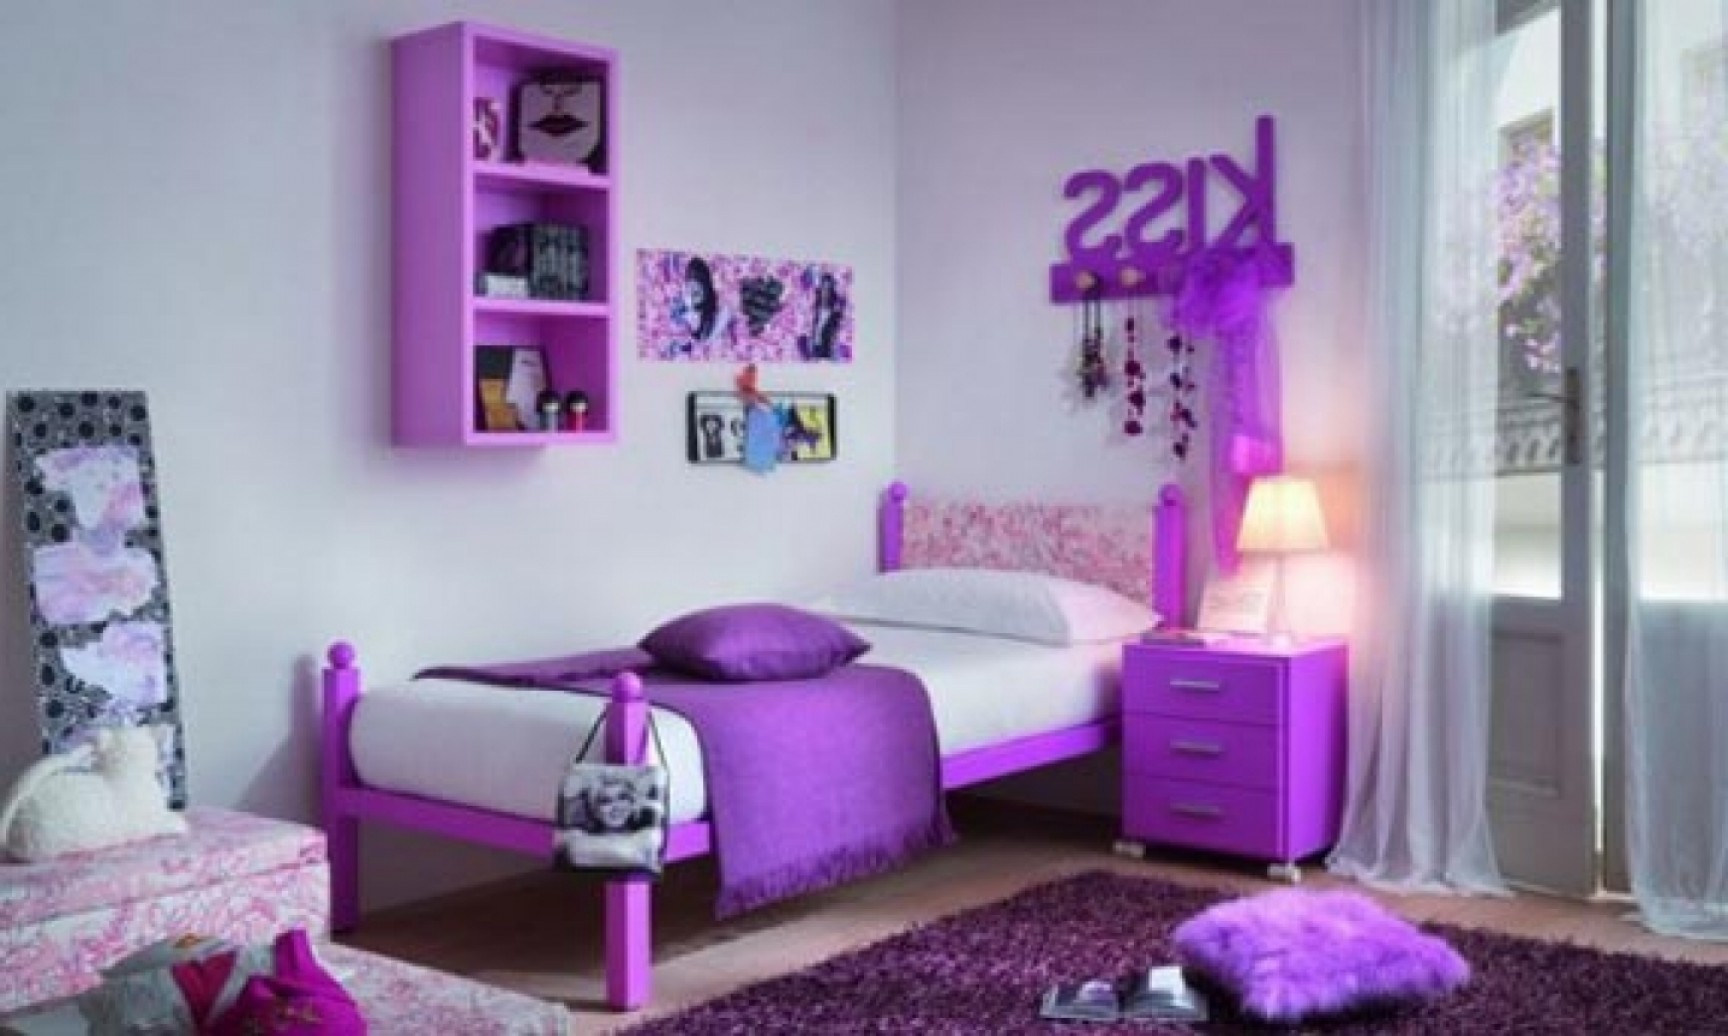 5 tips in small bedroom ideas for teenagers for Idea bedroom